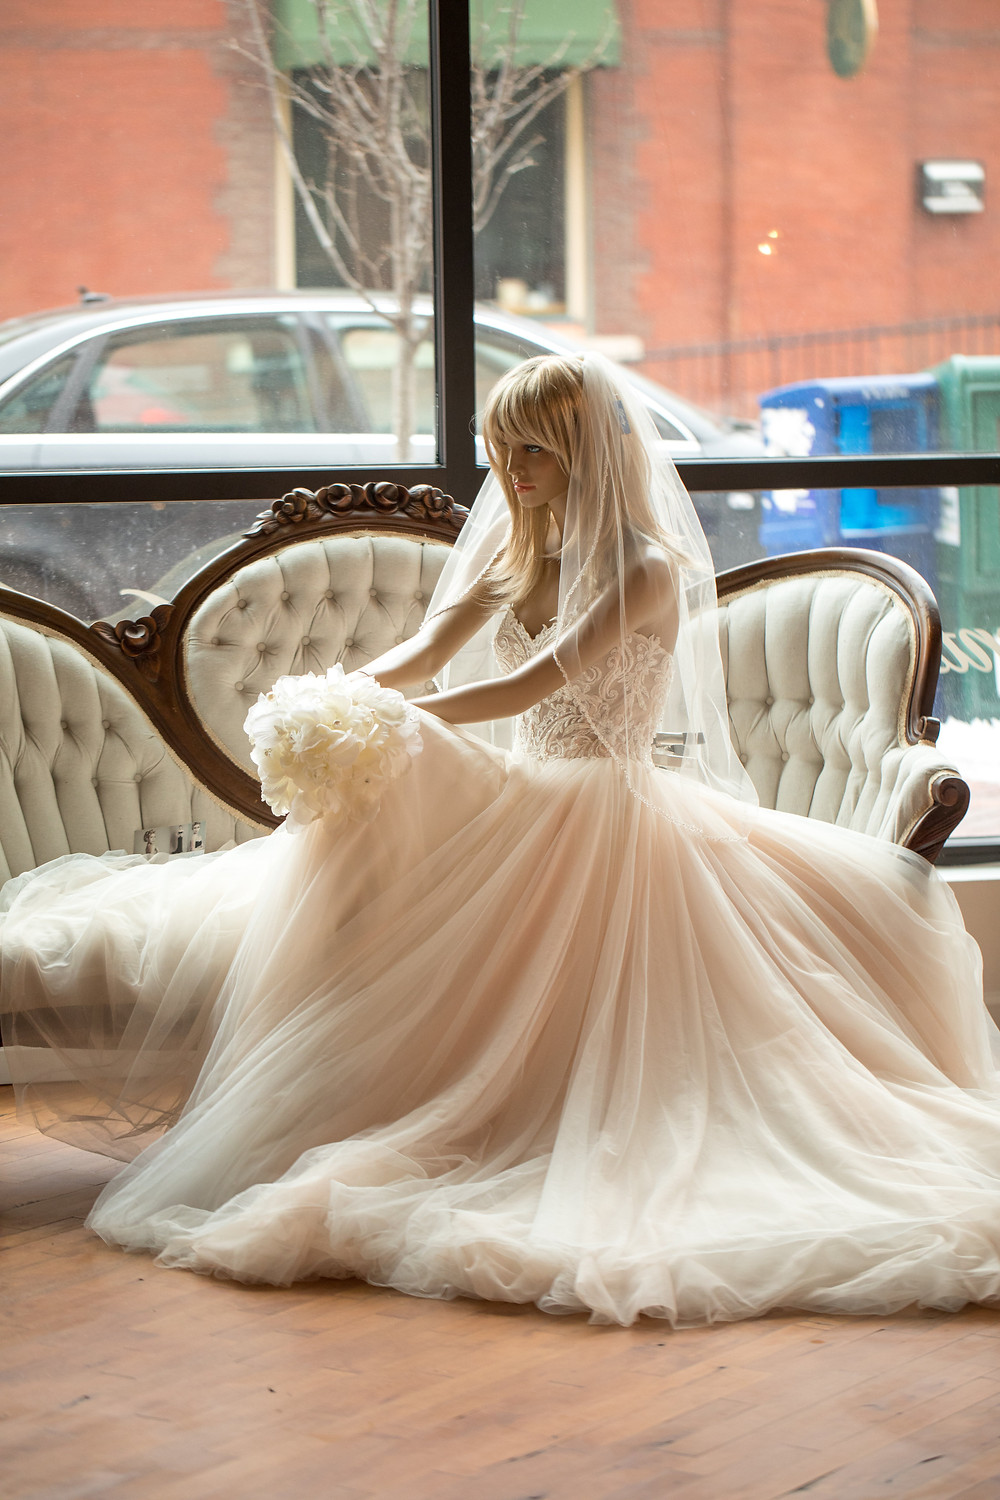 Mannequin models beautiful blush wedding dress